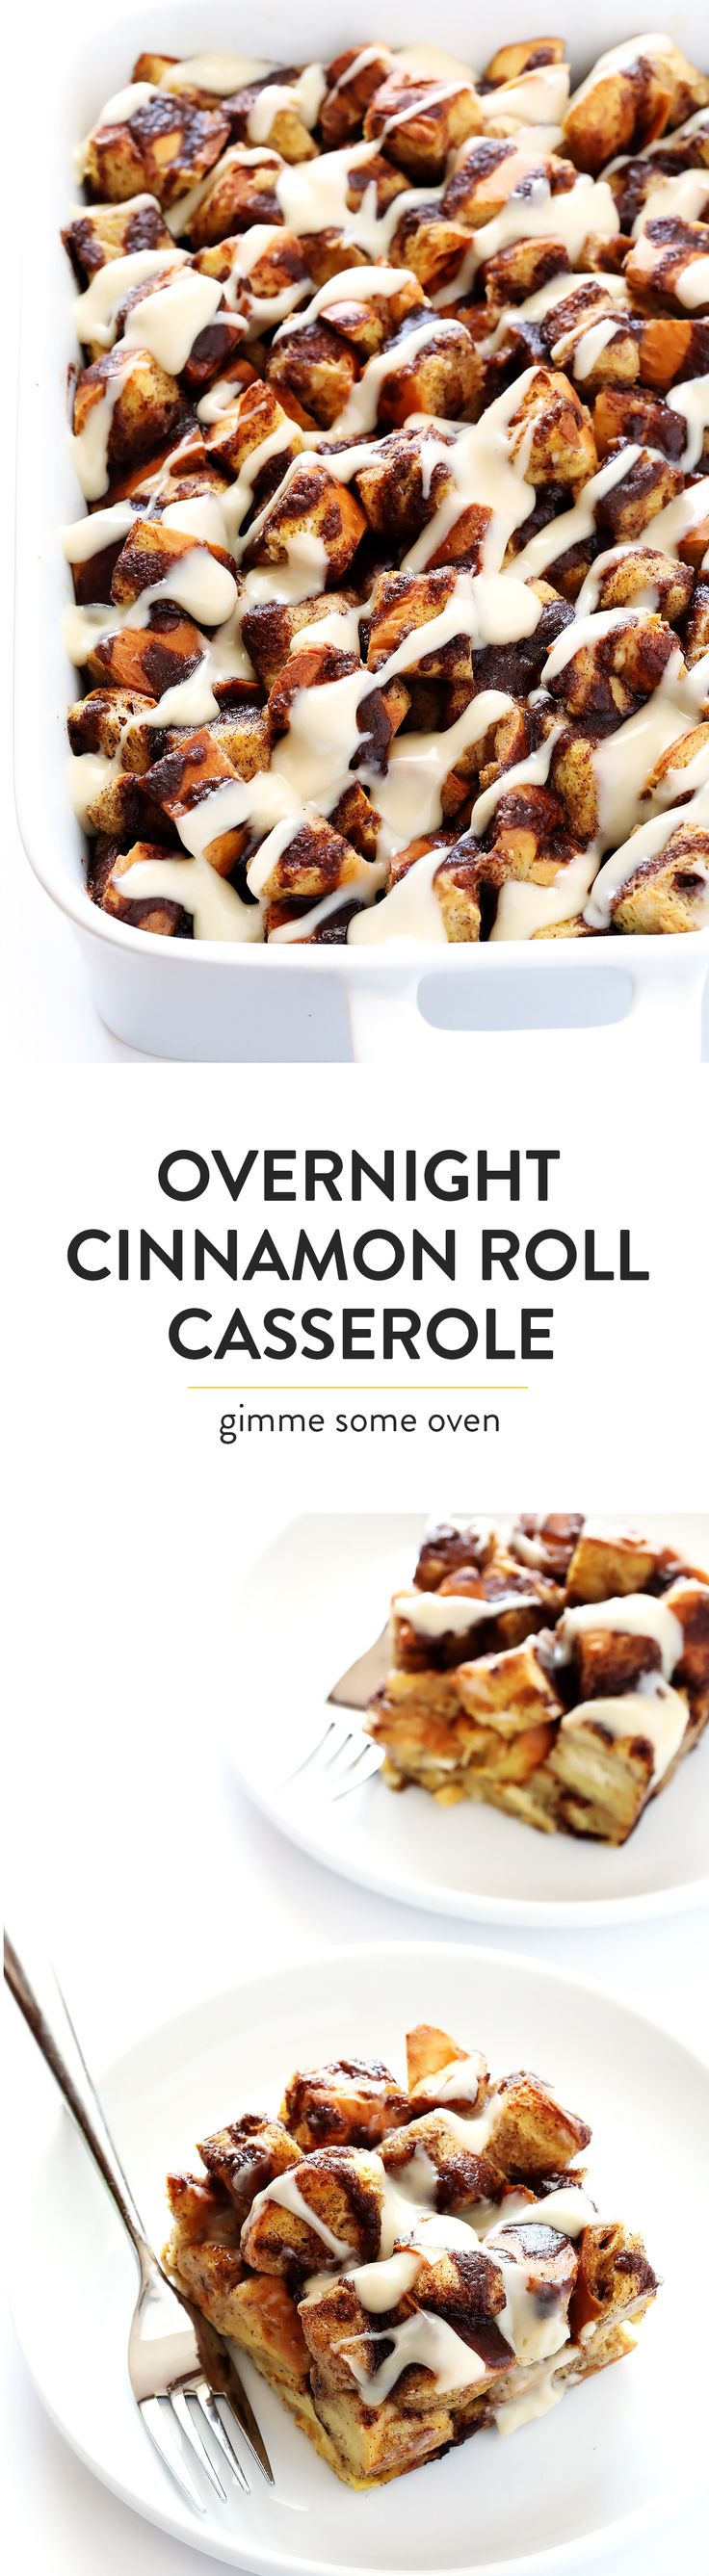 Everything you love about cinnamon rolls...made extra-easy in this casserole! No dough-making required, it's easy to make ahead the night before brunch, and it's SO delicious! | gimmesomeoven.com